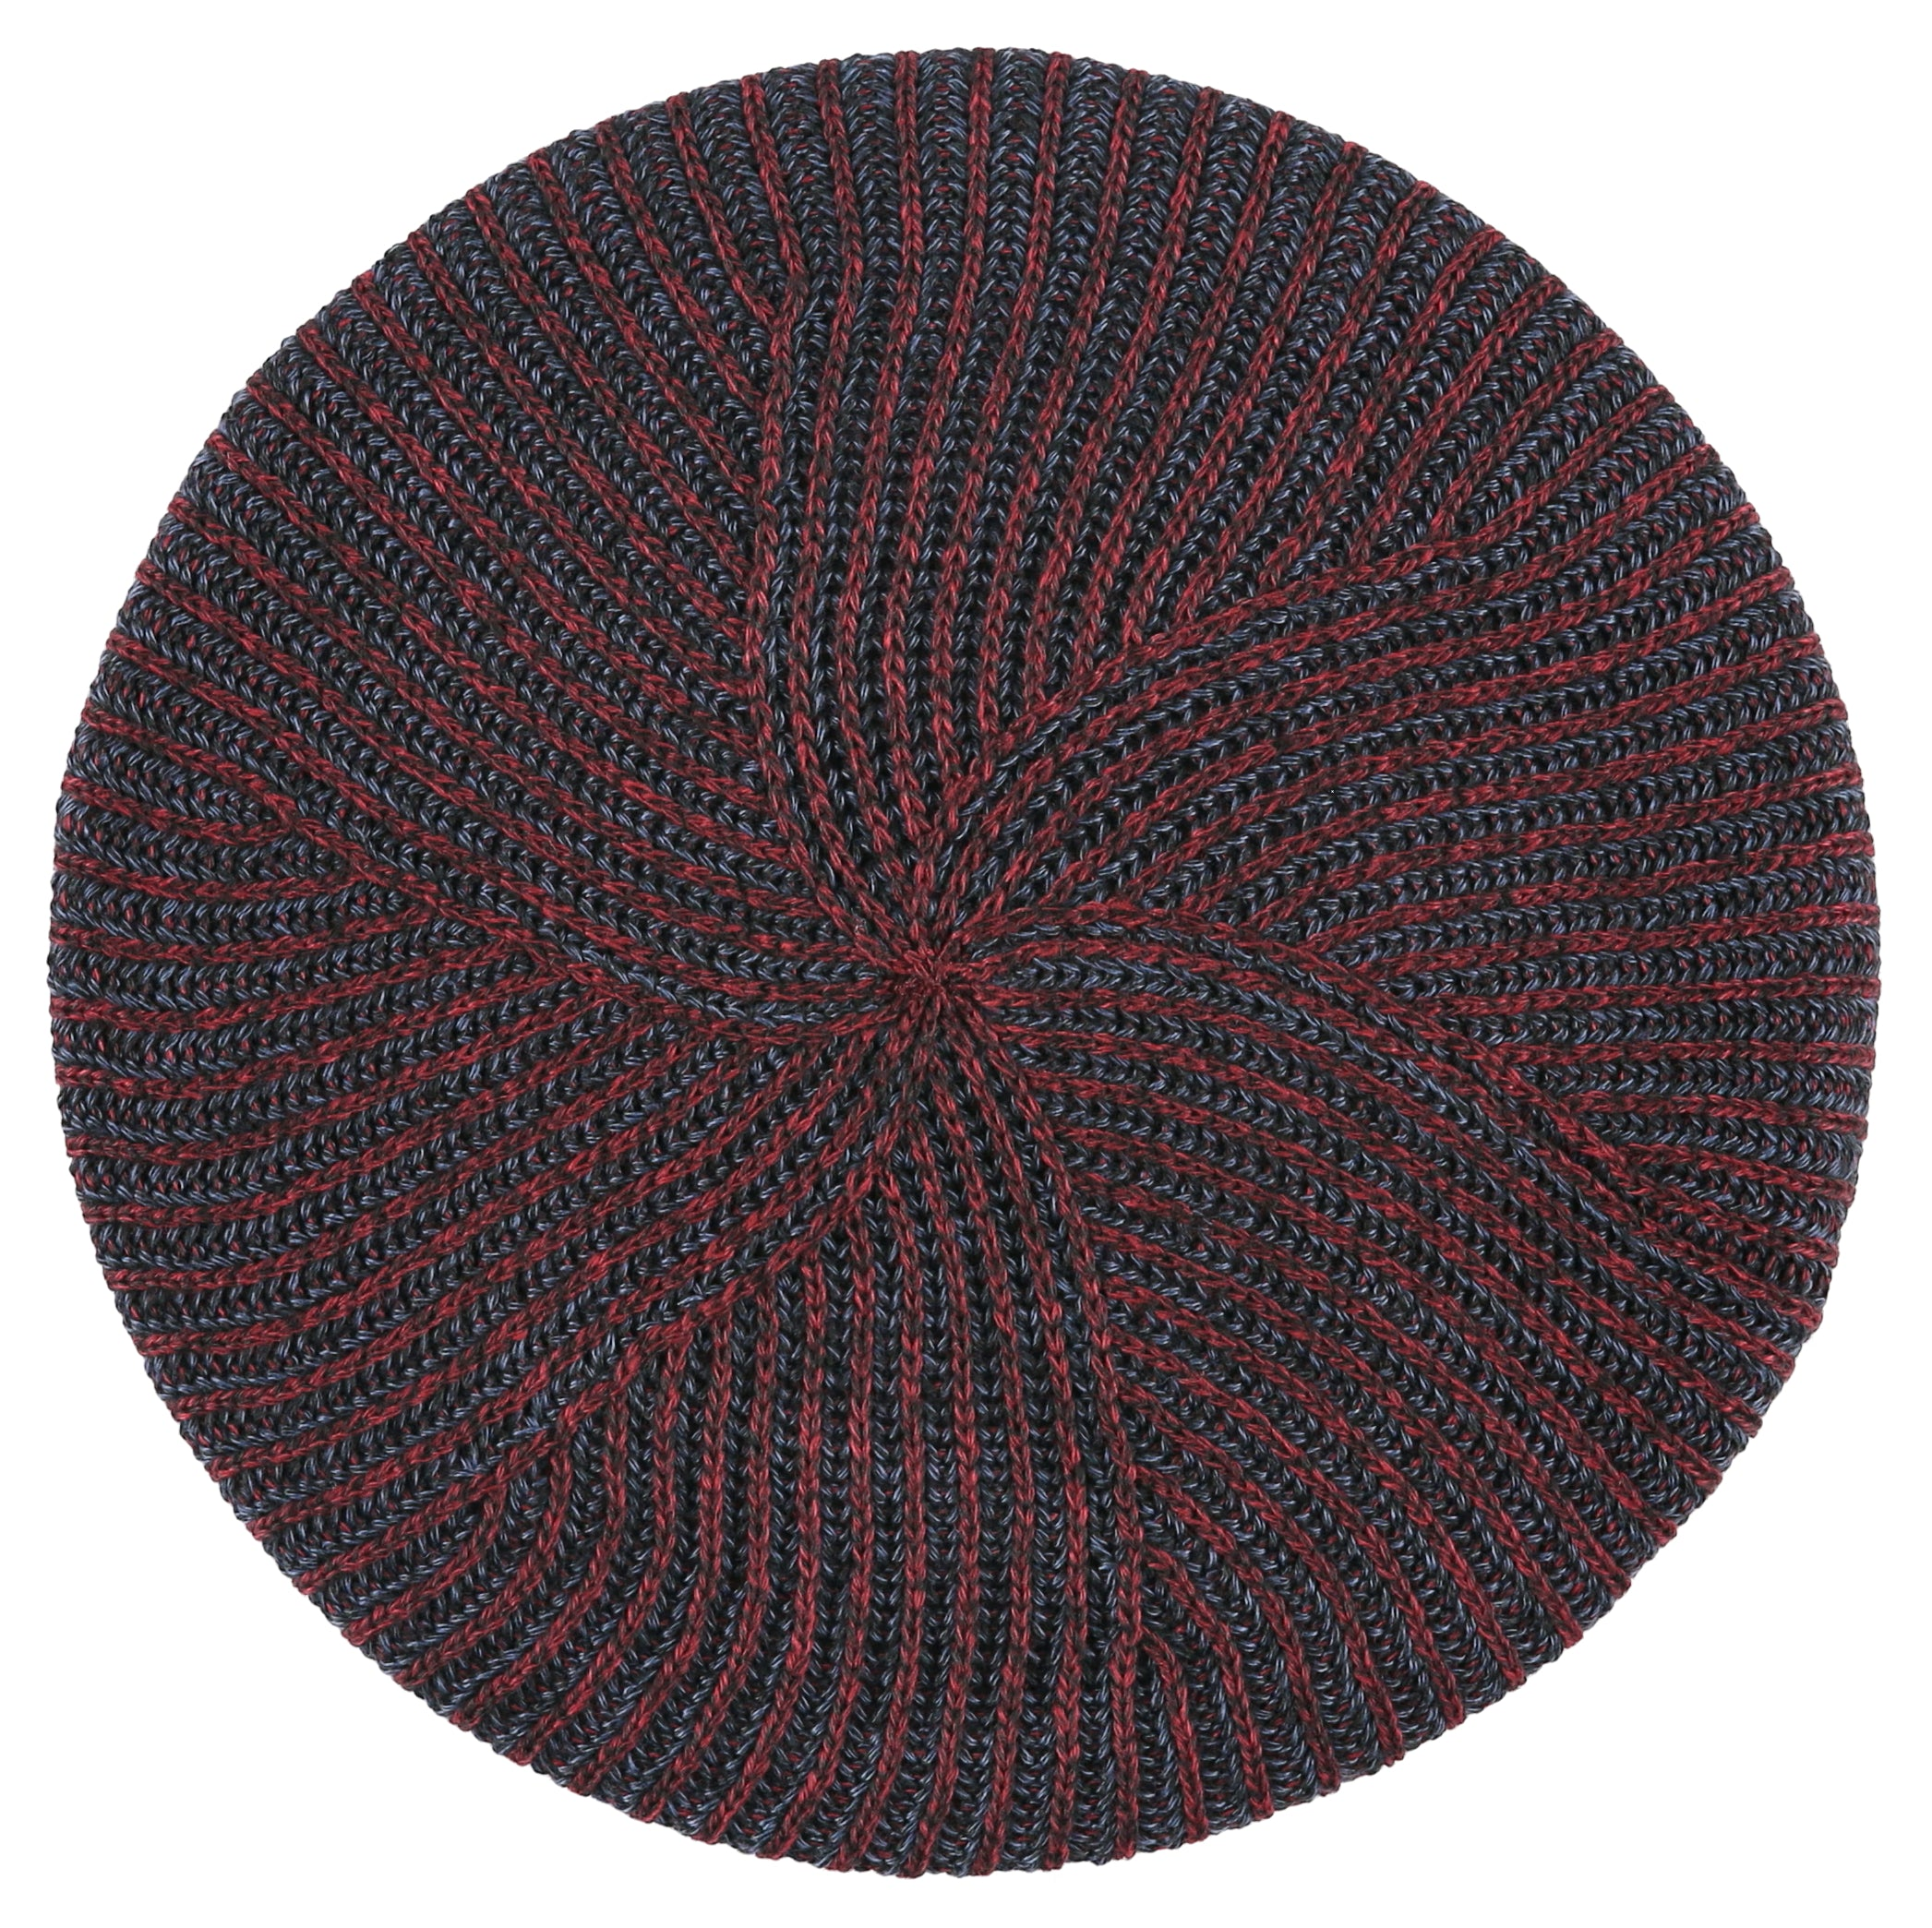 Lizi Headwear Burgundy/Navy Ribbed Winter Knit Chenille